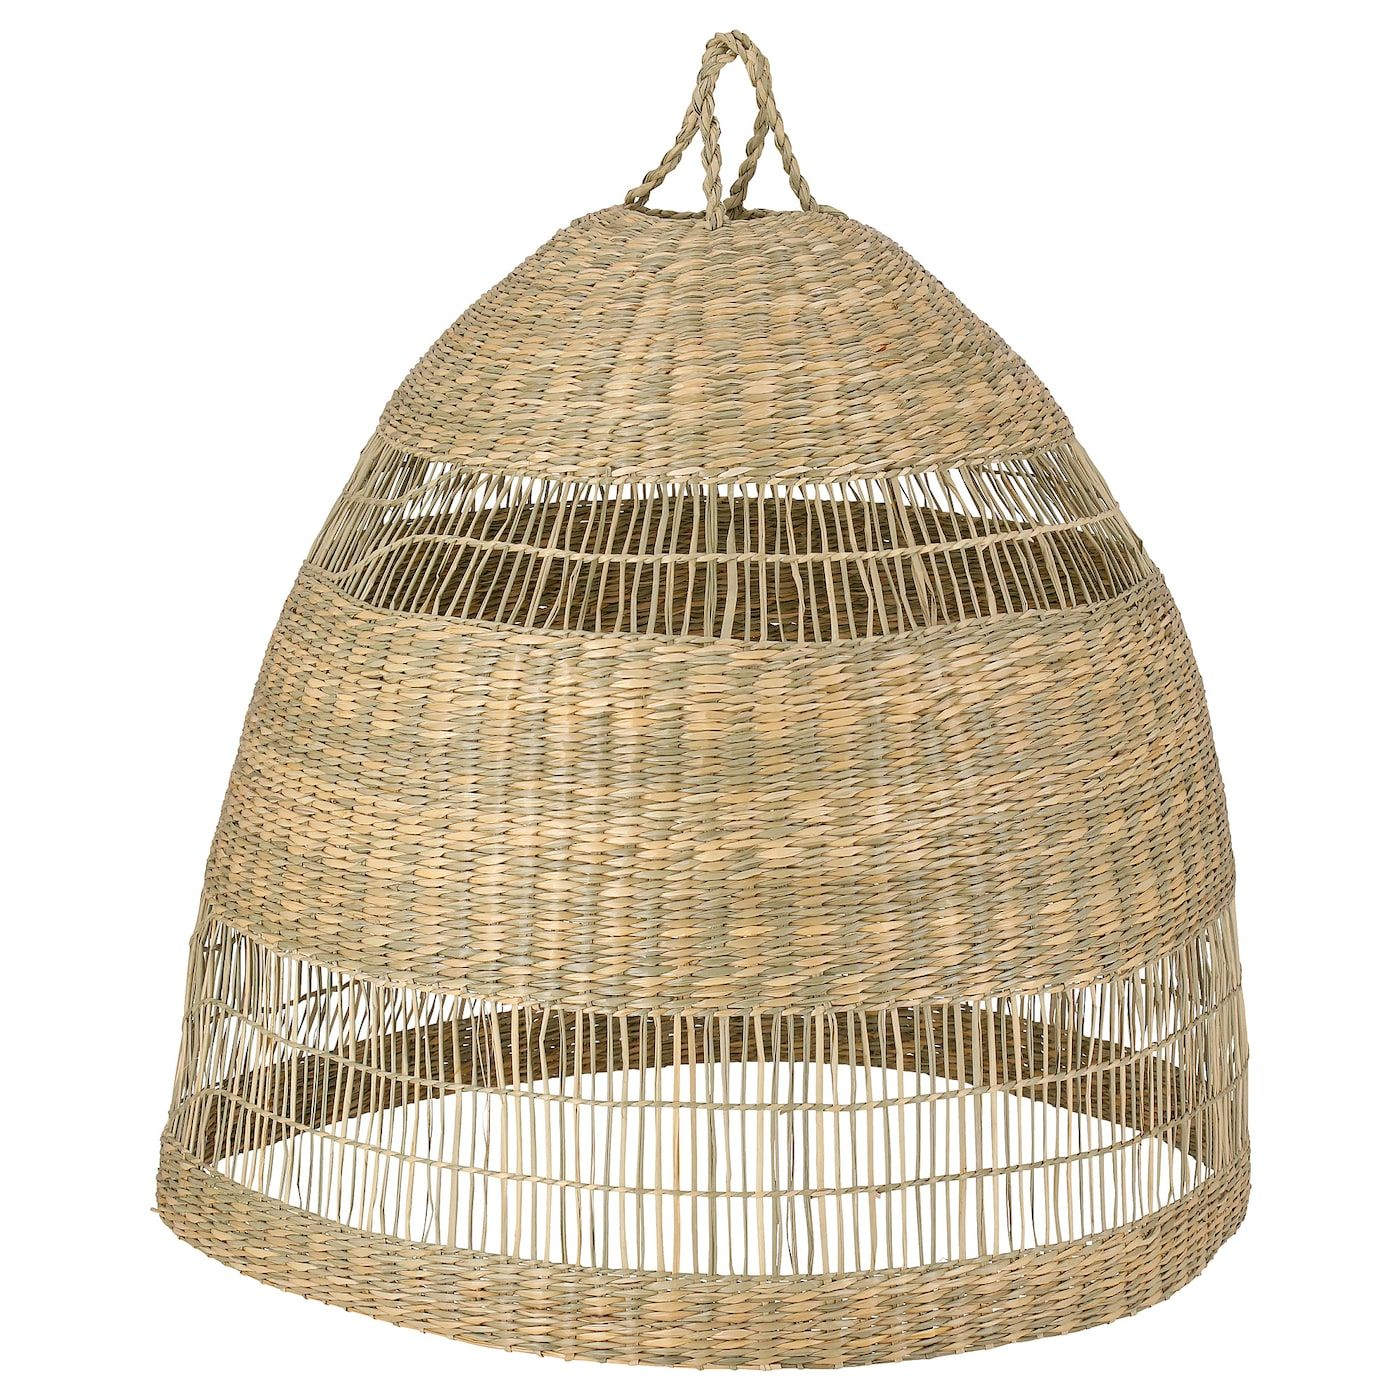 Ikea Torared Pendant Lamp Shade Seagrass In 2020 Pendant Lamp Ikea Lamp Shades